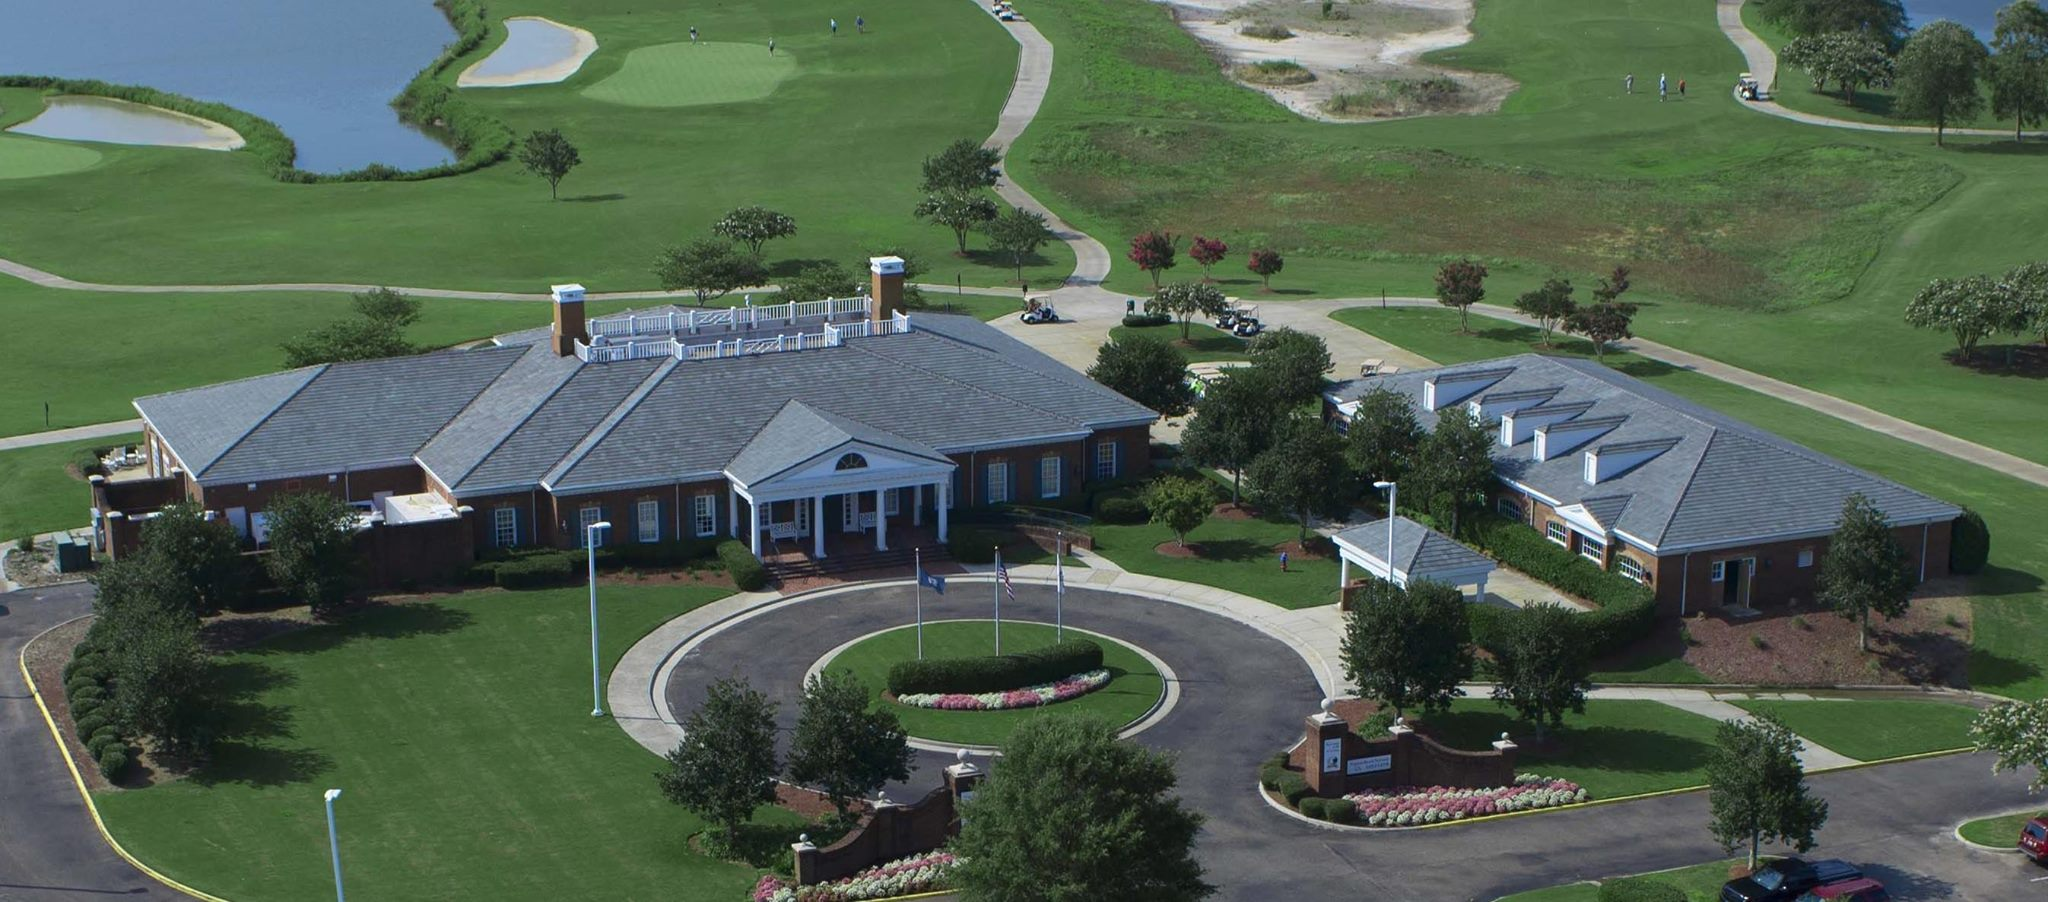 Black Angus Grille at the Virginia Beach National Golf Course